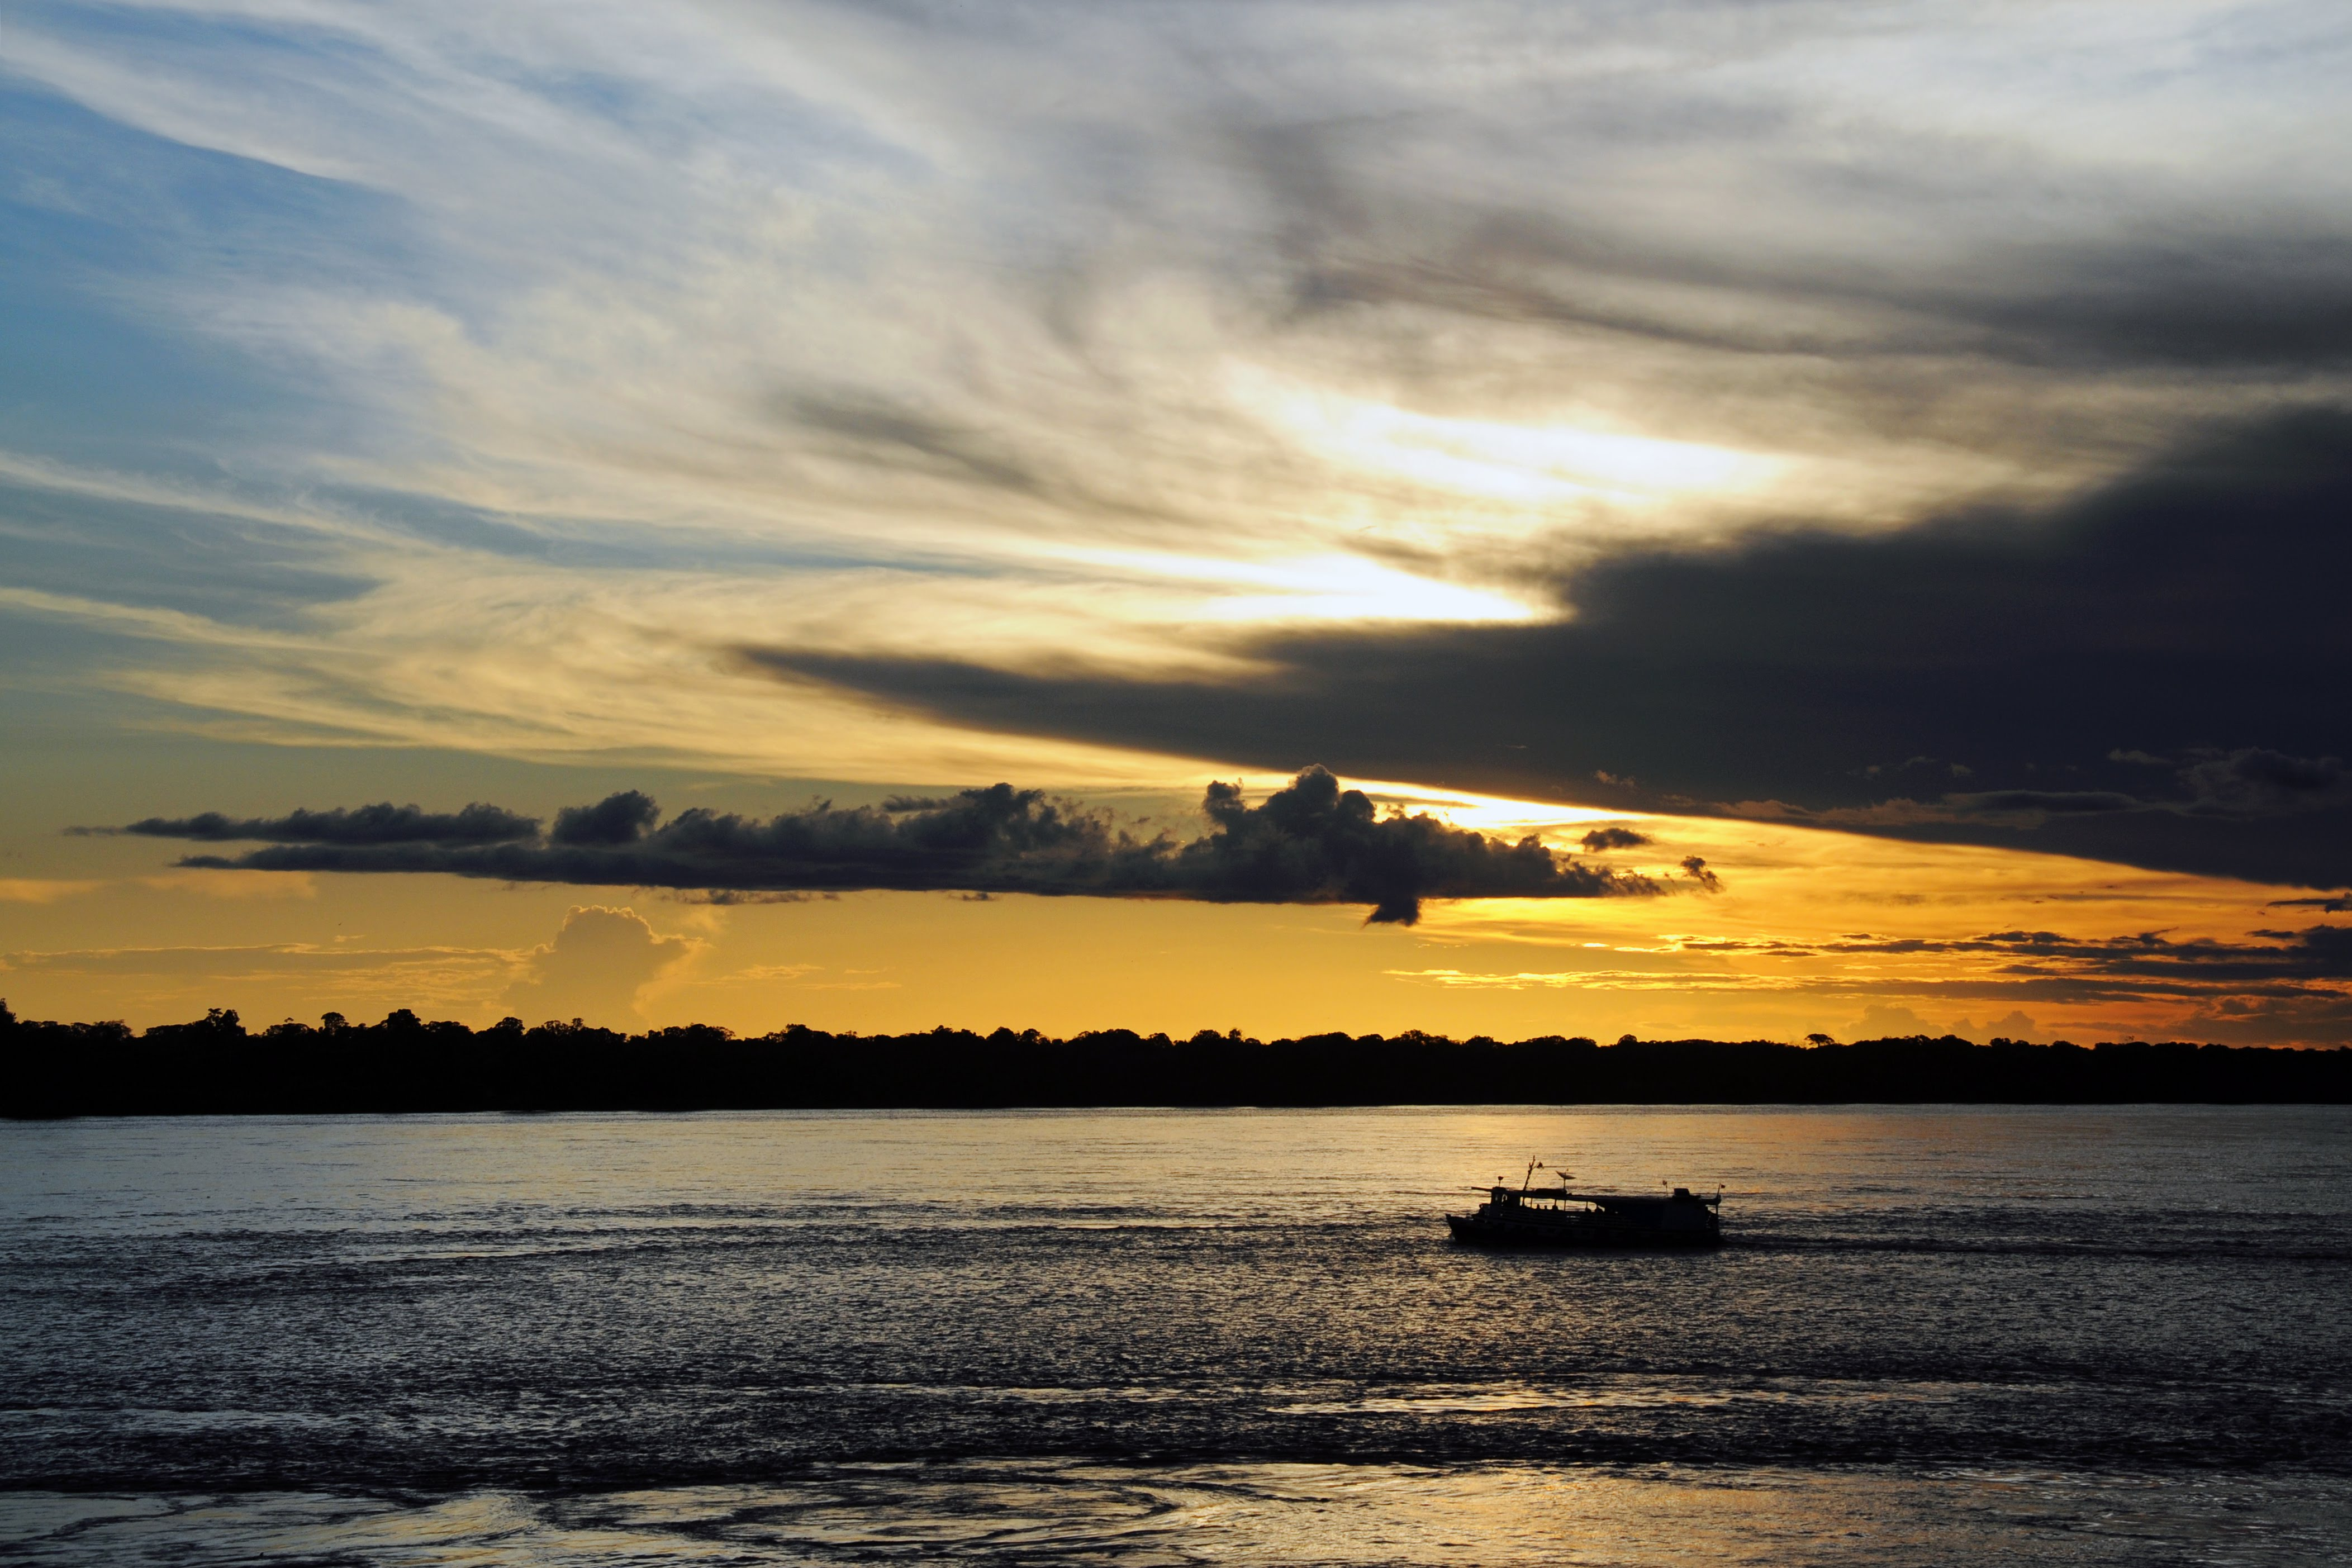 sunset-over-amazon-river-tabatinga-brazil_23122734395_o